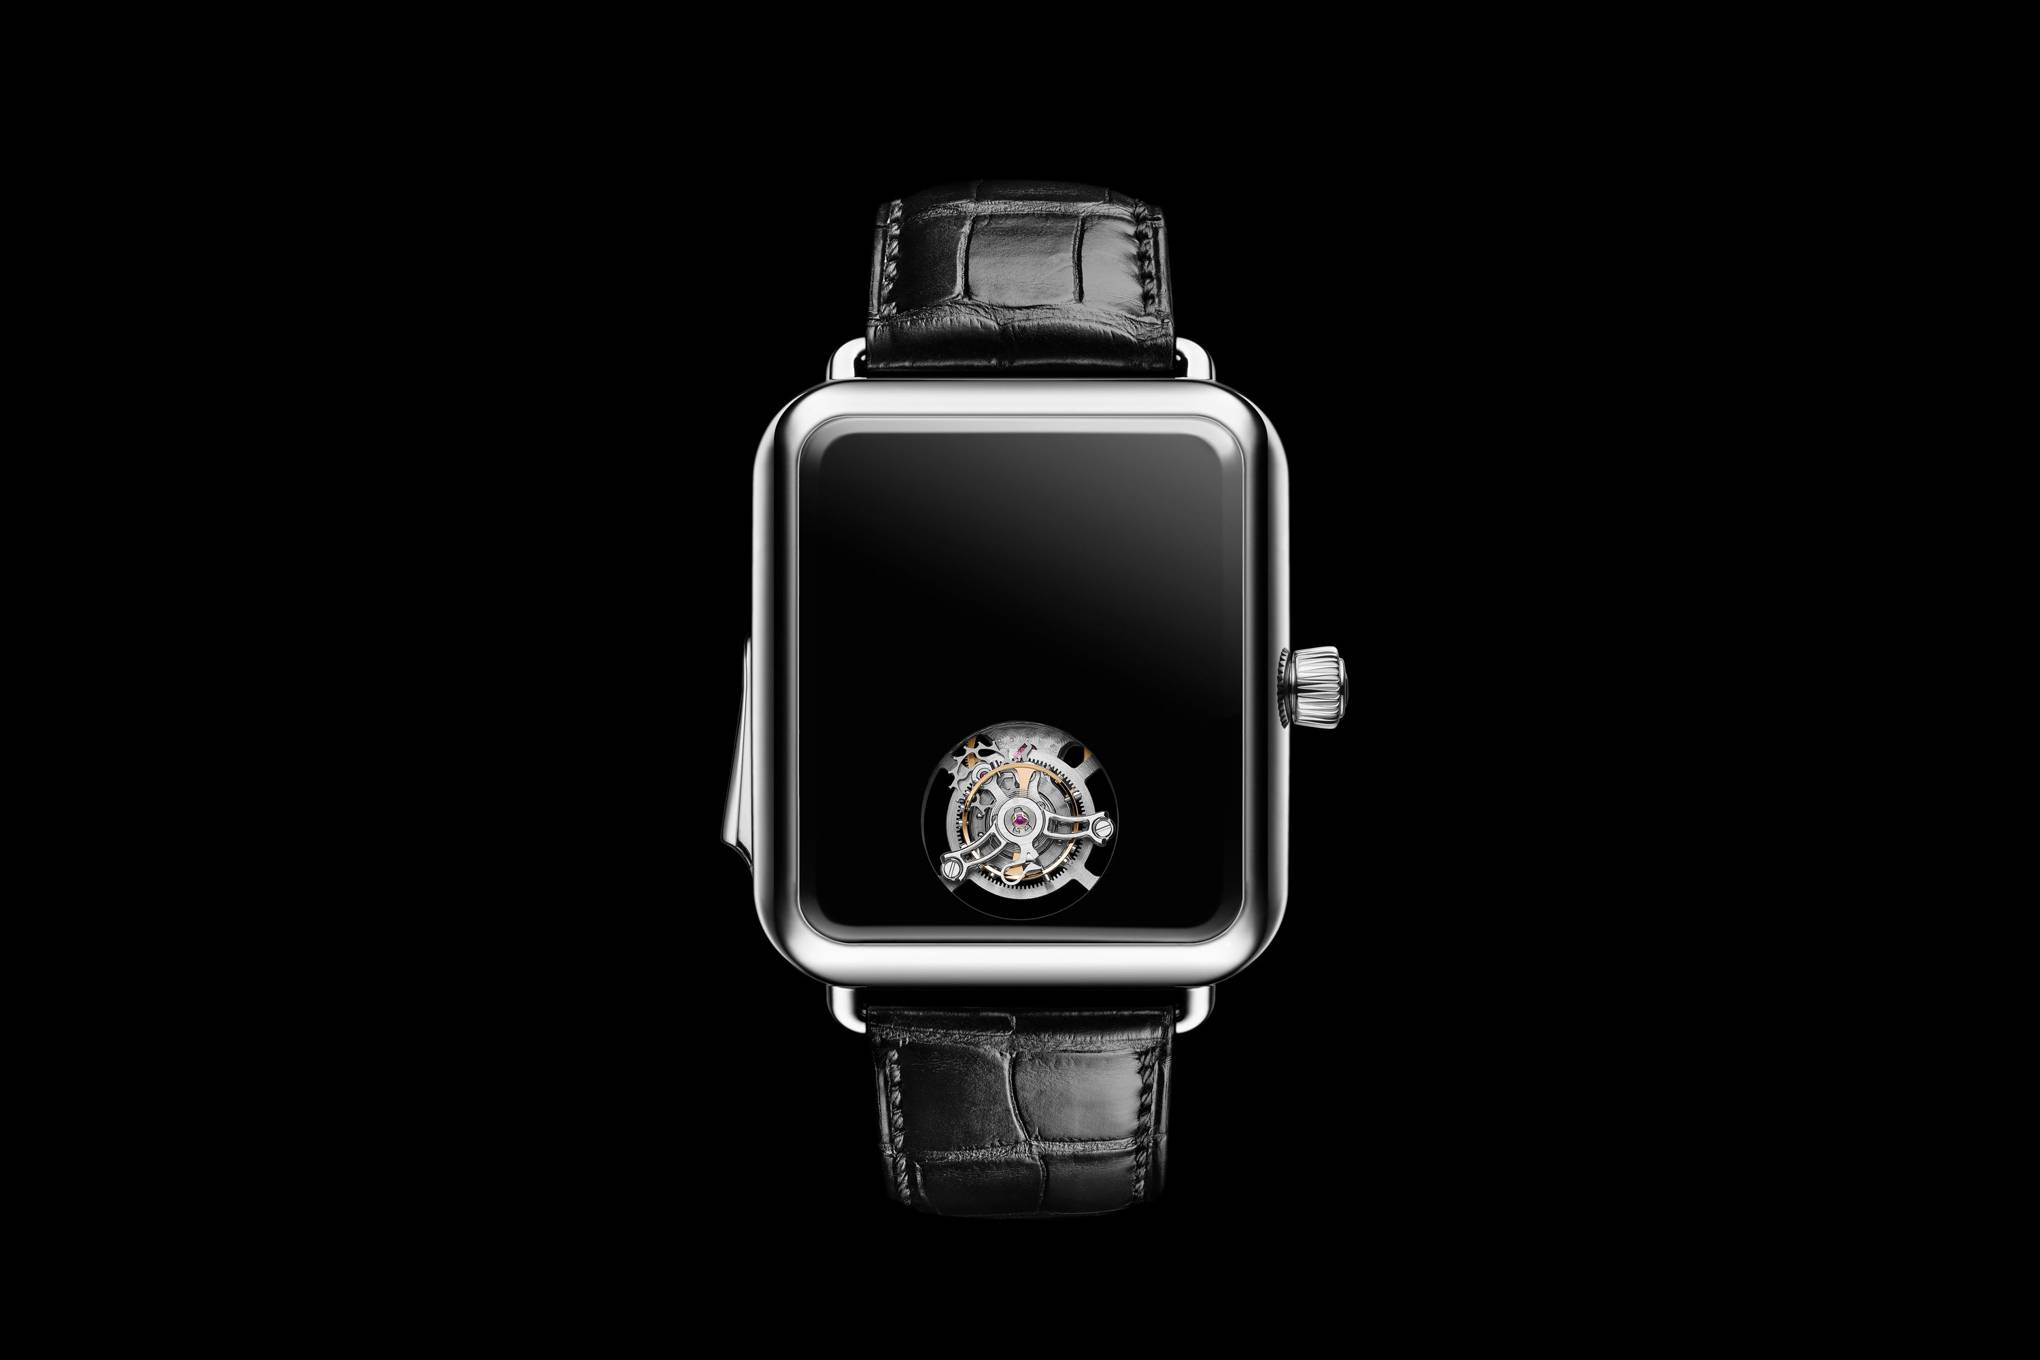 This Swiss company has created a bonkers anti-Apple Watch